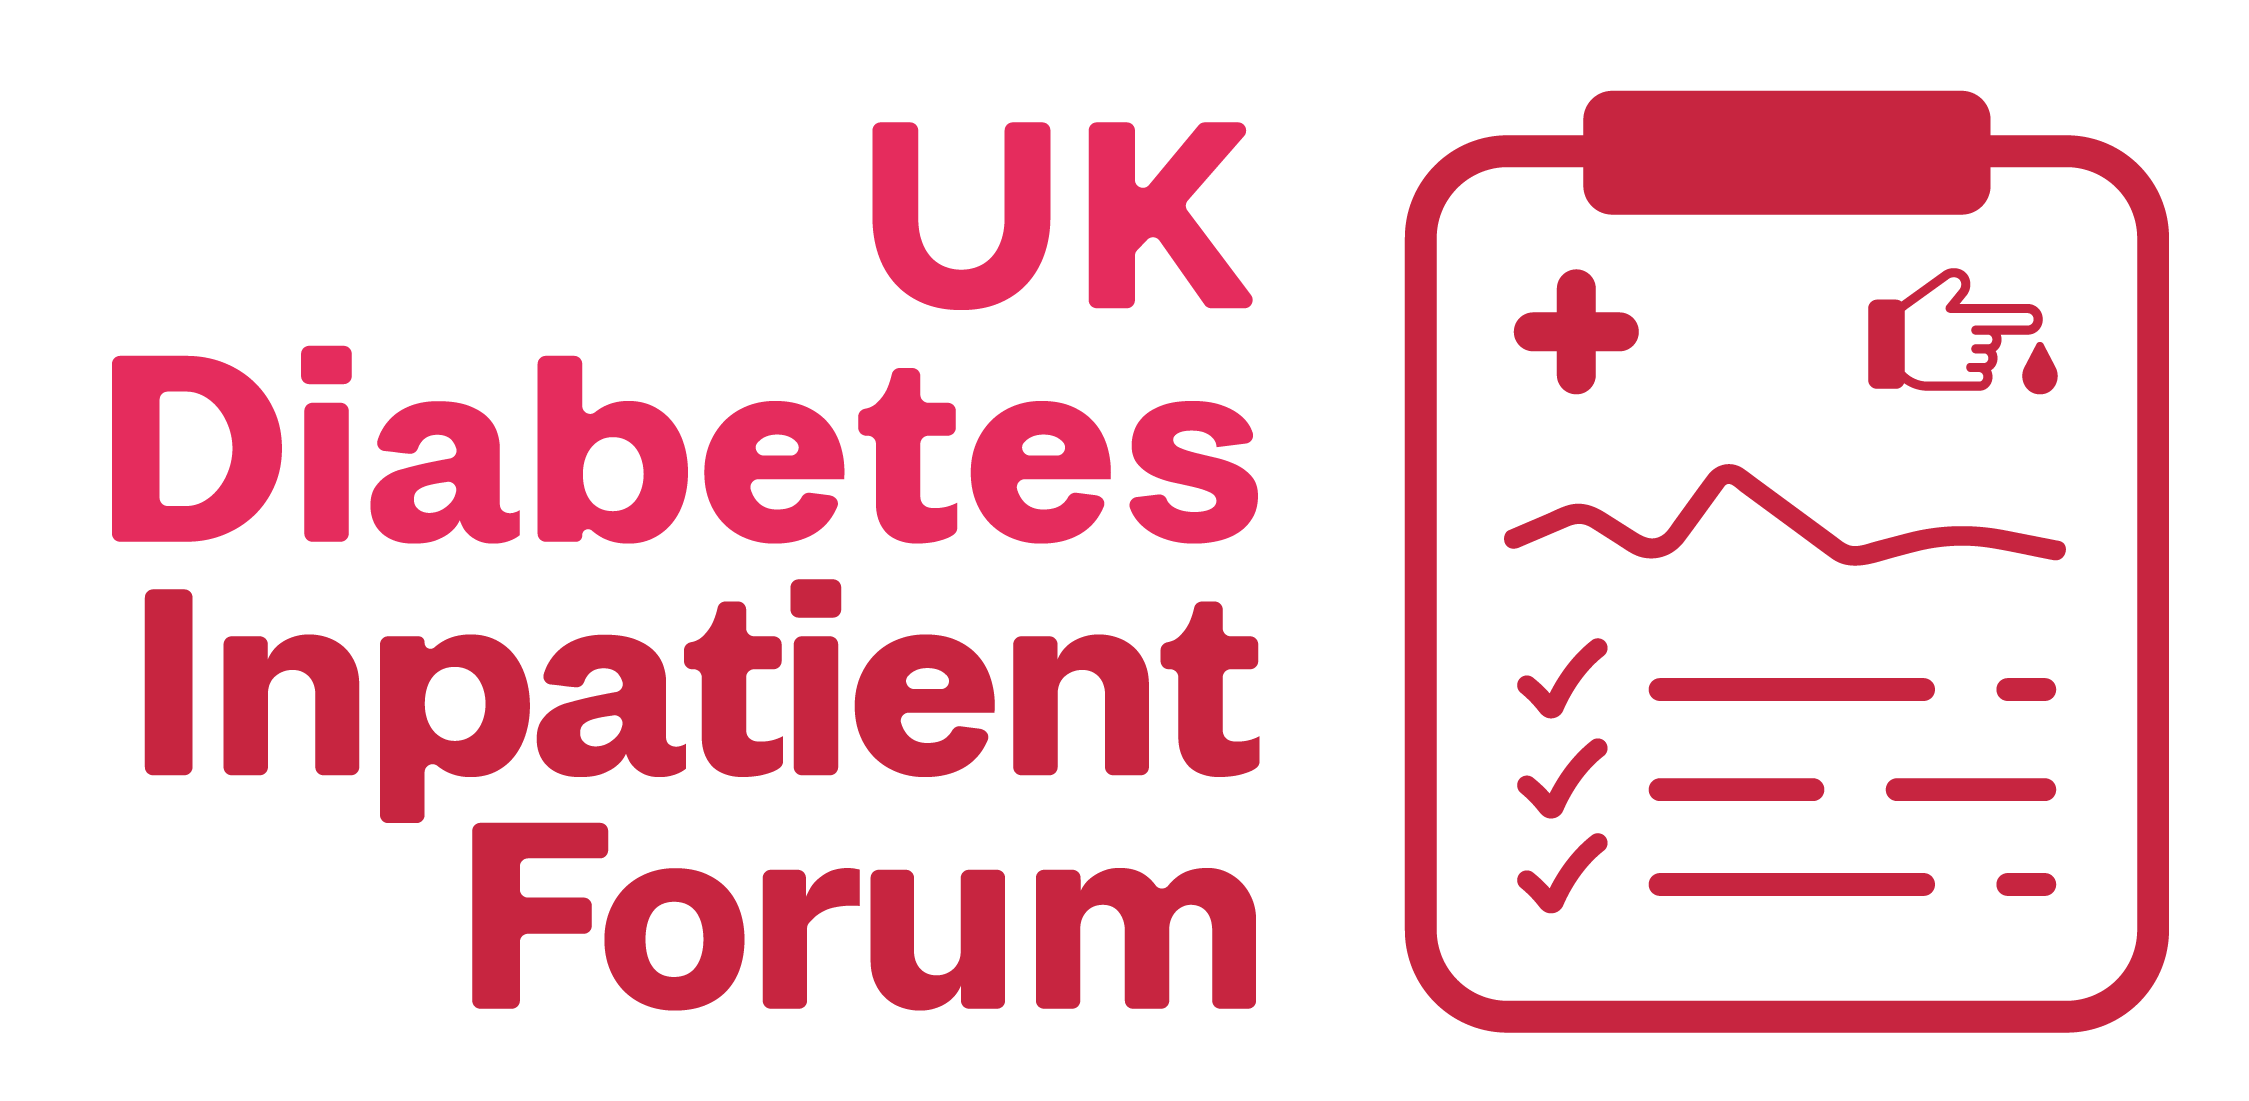 UK Diabetes Inpatient Forum